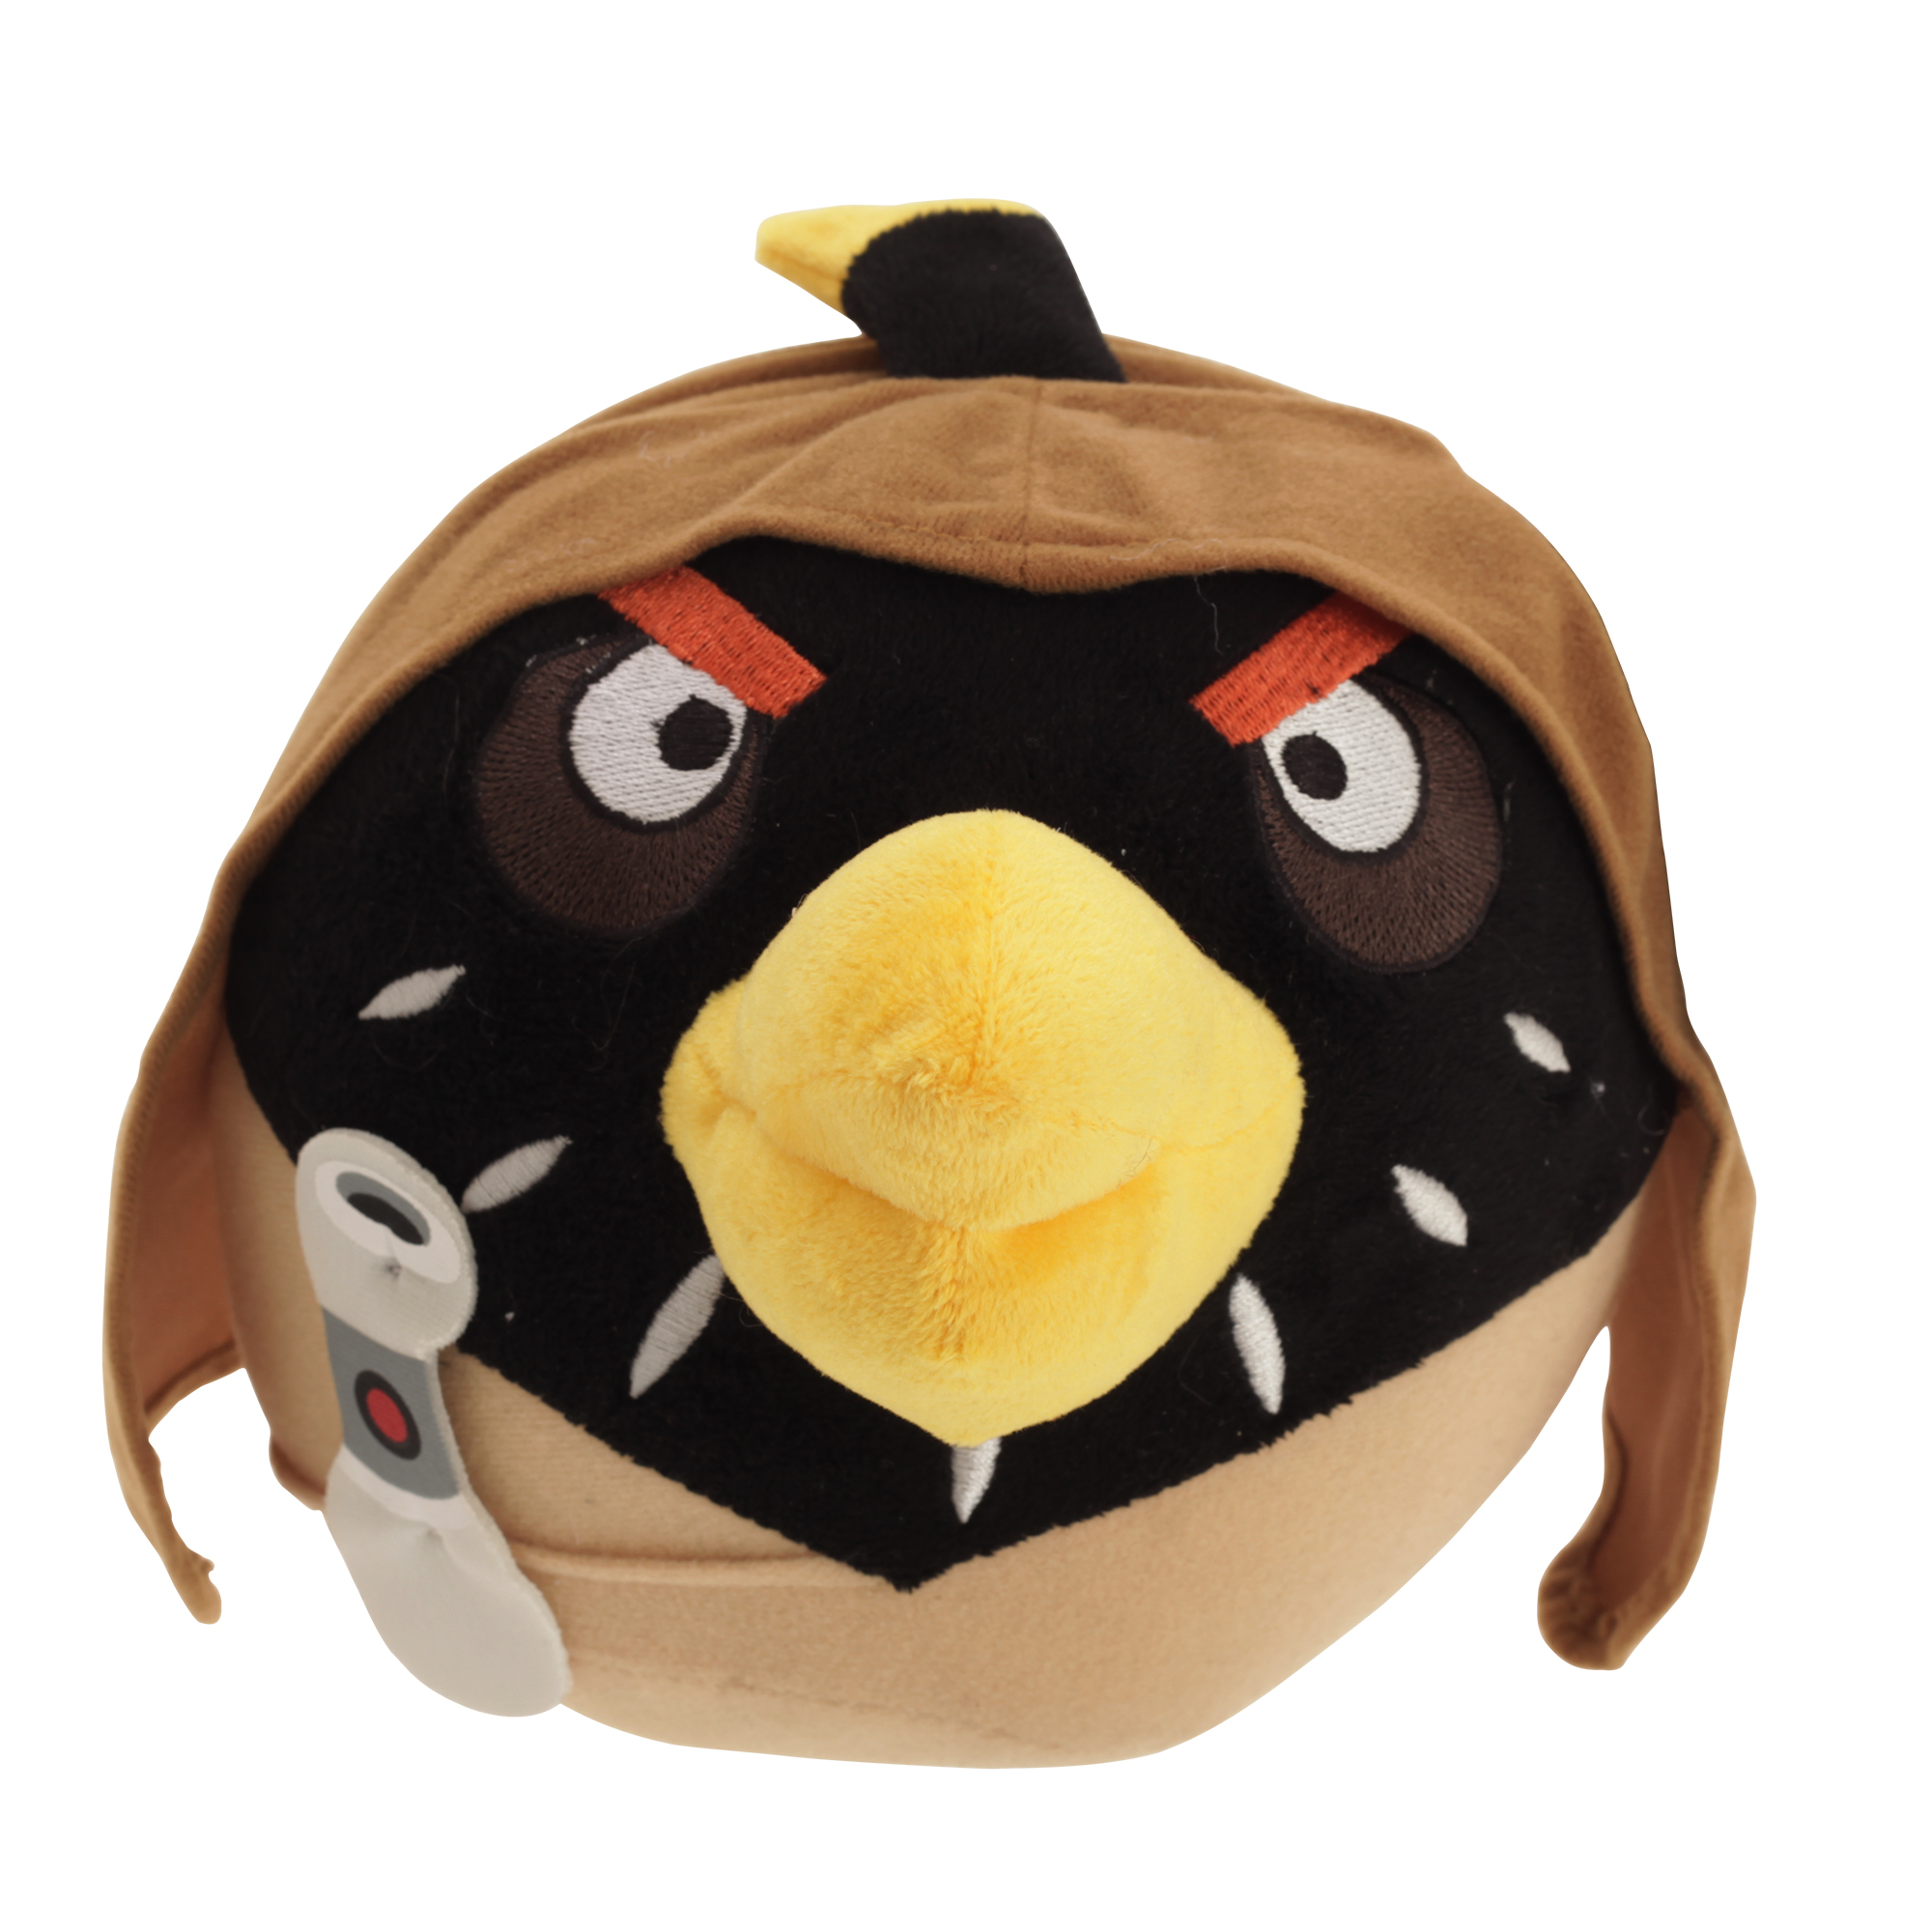 Angry birds star wars official character plush toy ebay - Angry birds toys ebay ...